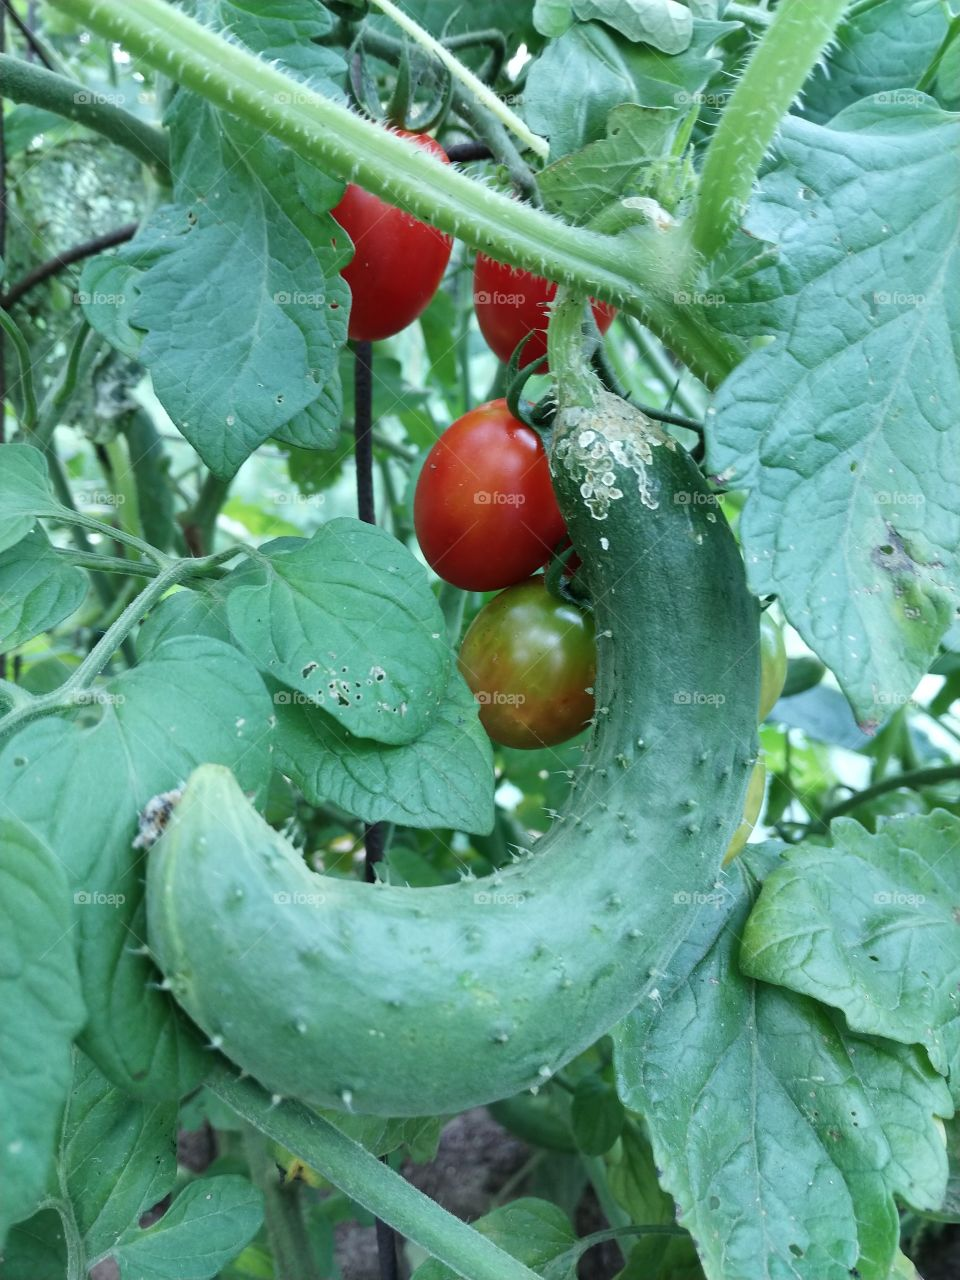 Gardening in the country: cucumber hanging on a vine with red grape tomatoes in the background.